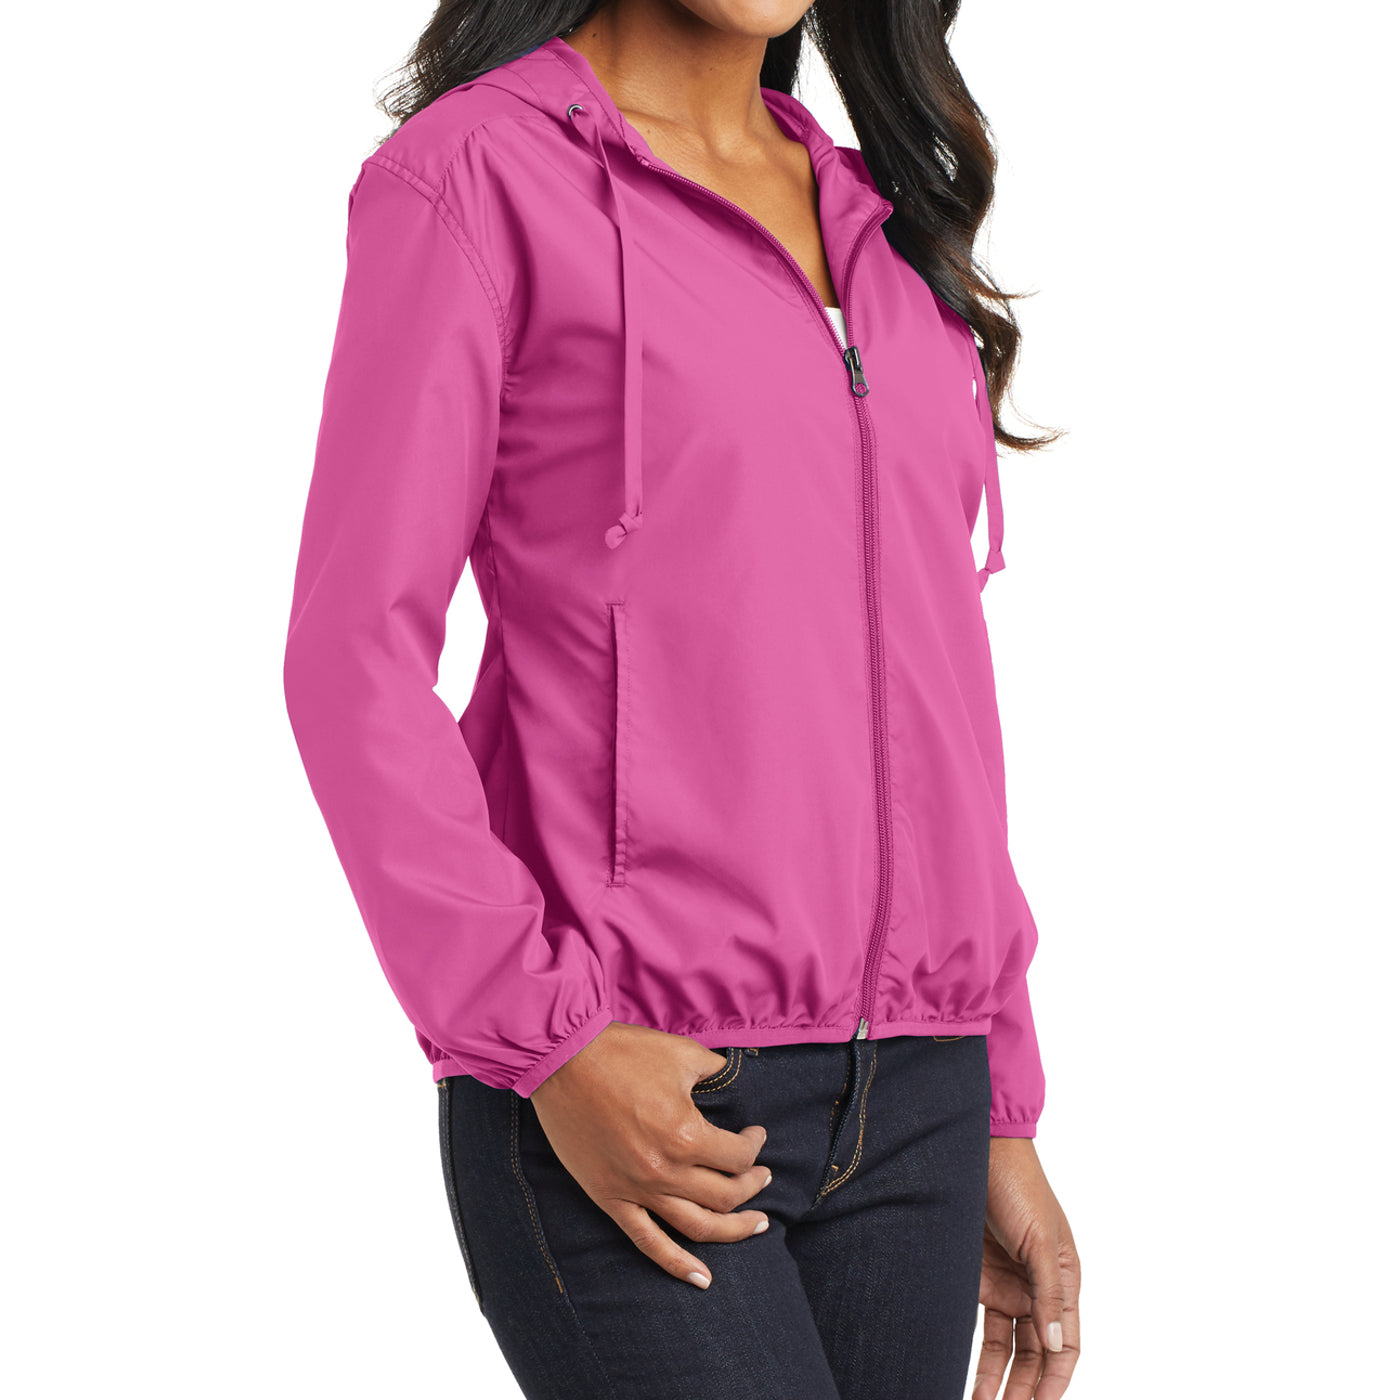 Women's Hooded Essential Jacket - Charity Pink - Side